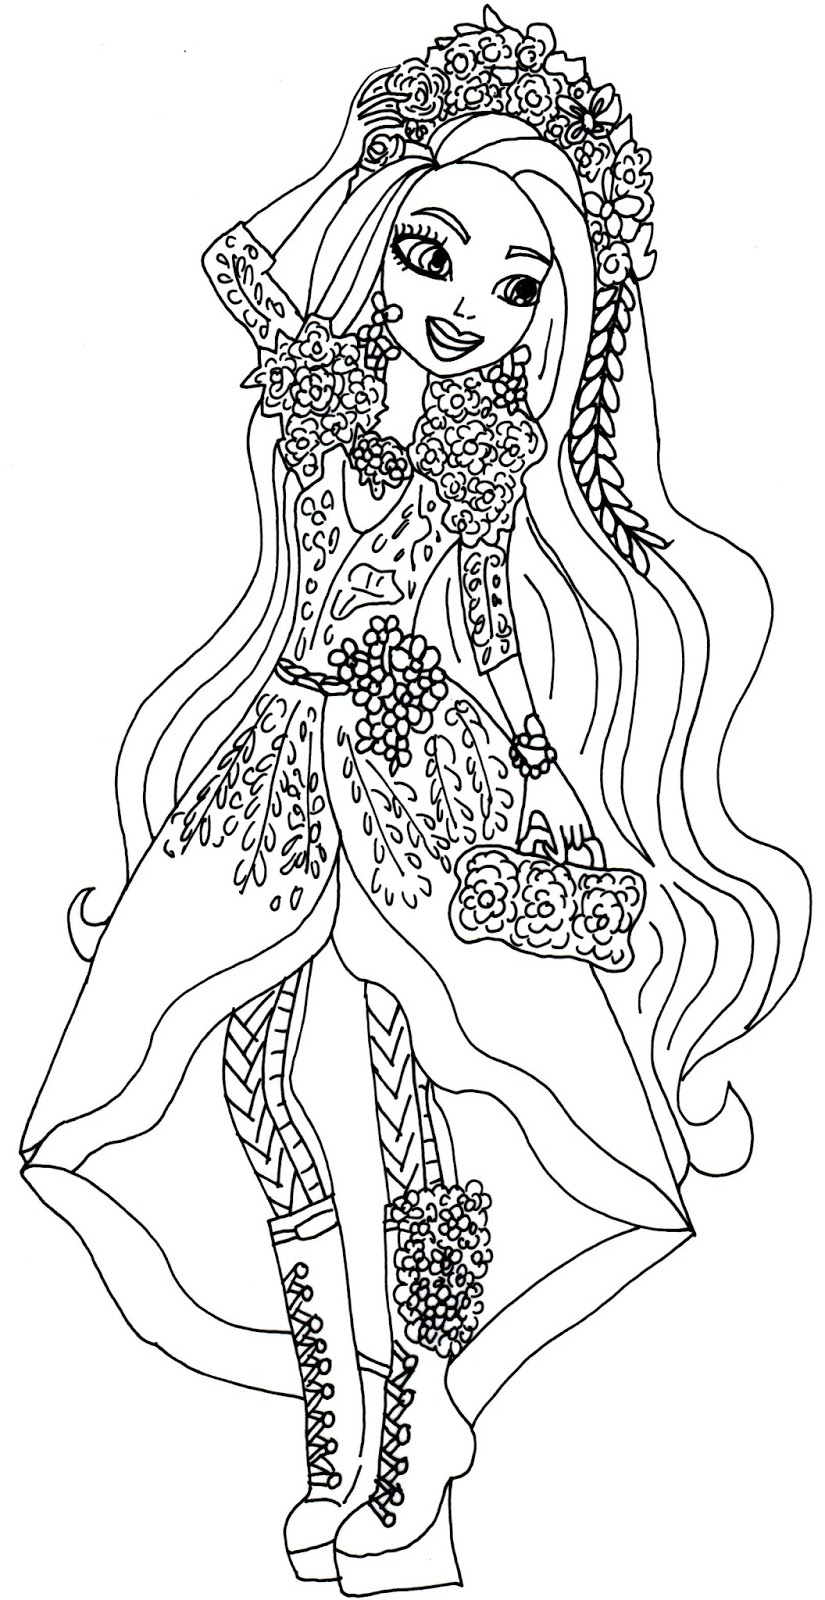 Printable coloring pages ever after high - Free Printable Spring Unsprung Ever After High Coloring Page For Holly O Hair